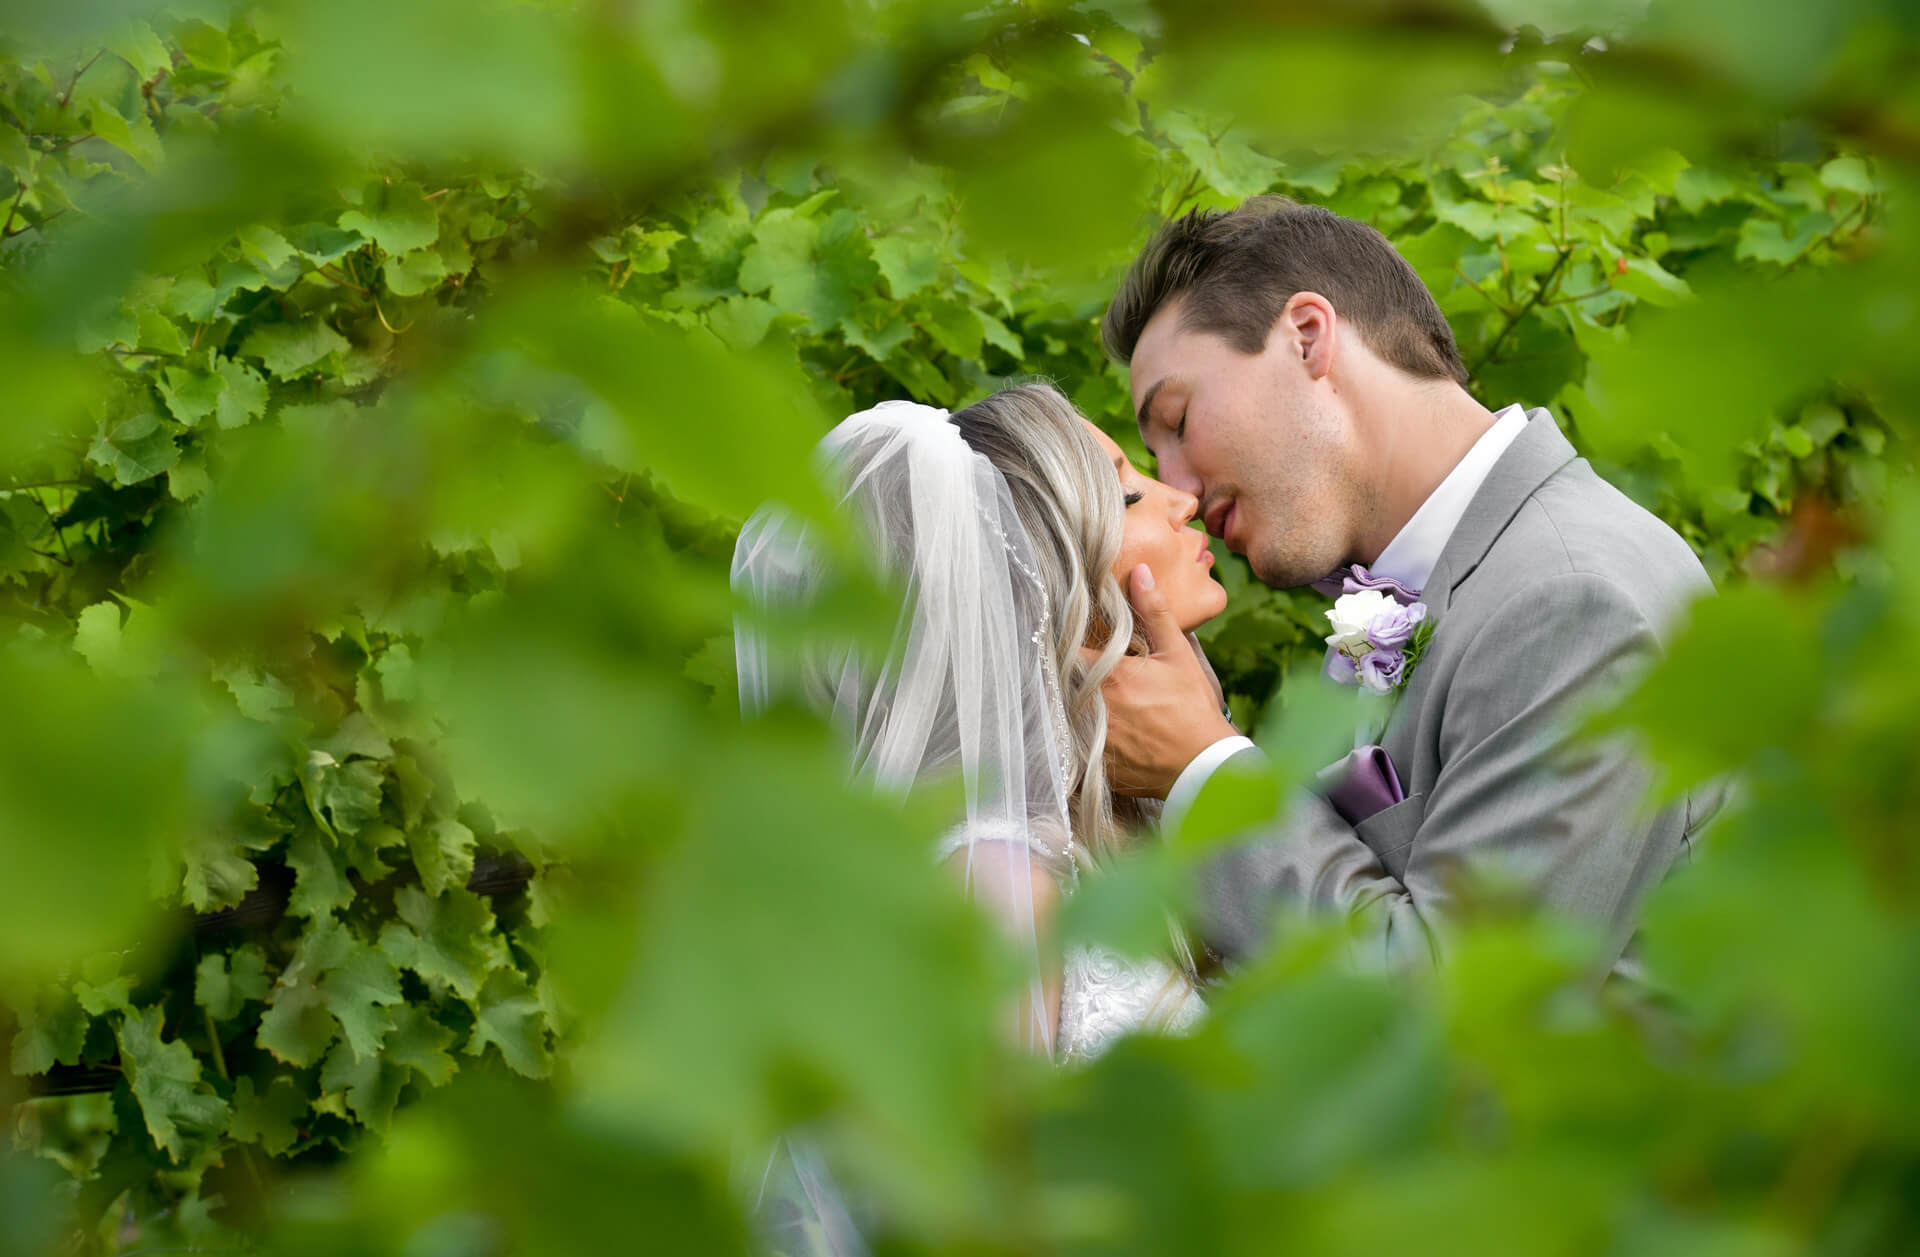 The bride and groom kiss in the vineyards after moving their wedding to a destination wedding in Traverse City Michigan during the pandemic.